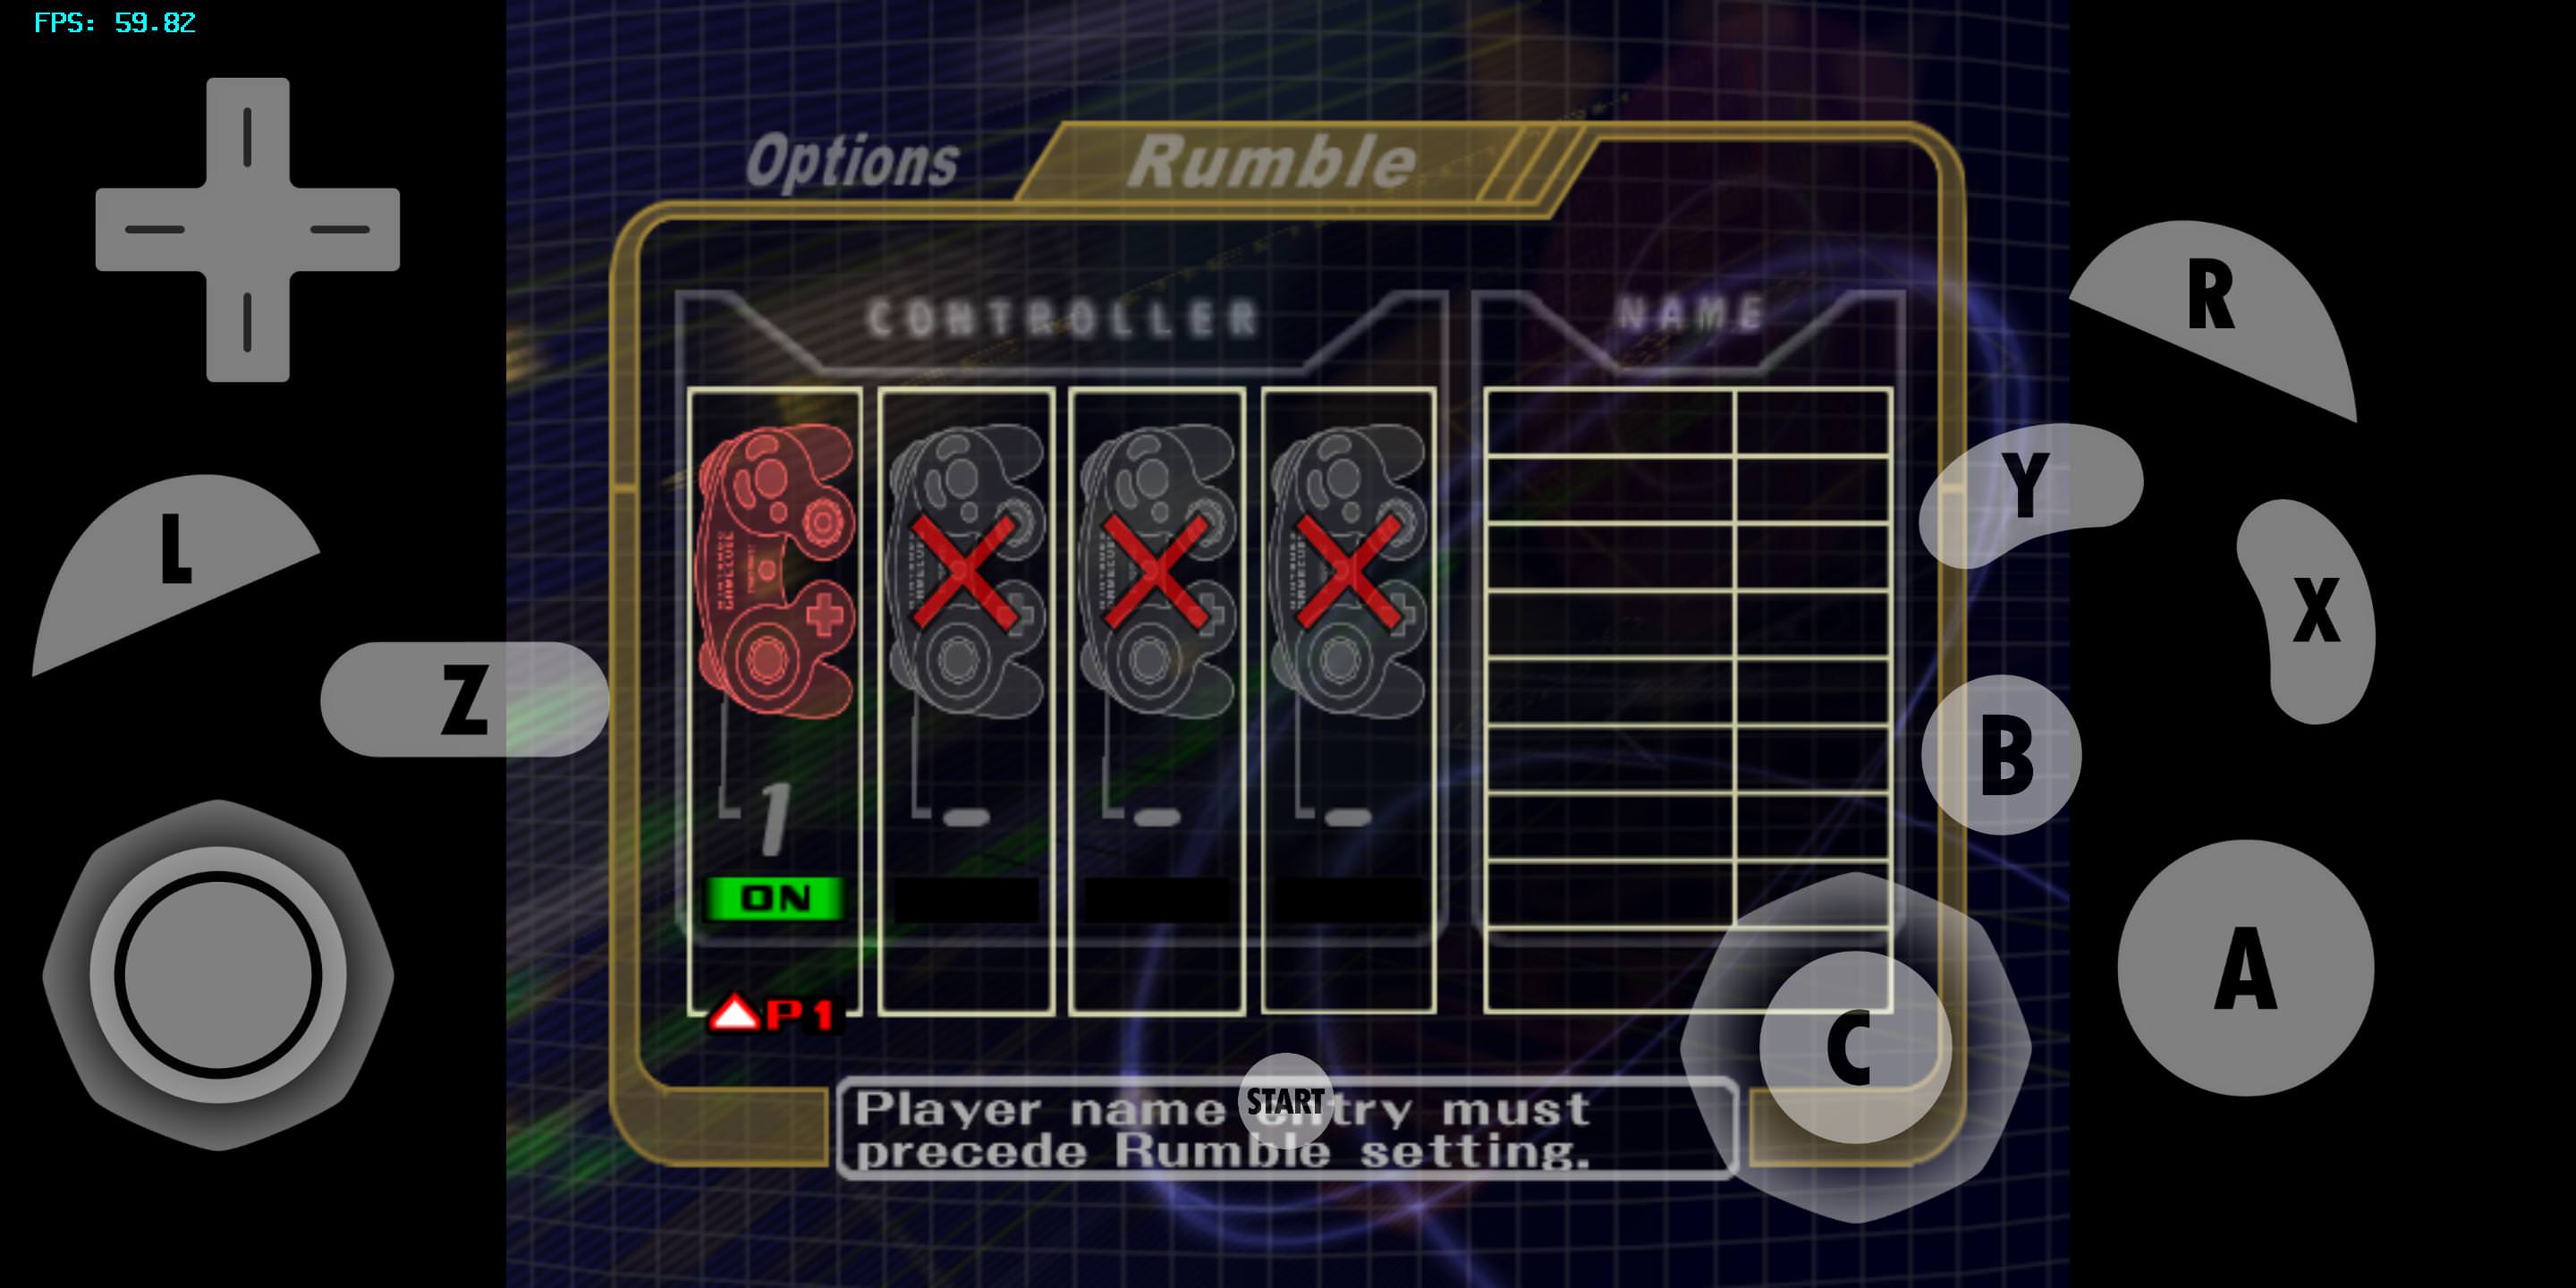 Dolphin Emulator brings GameCube controller rumble support